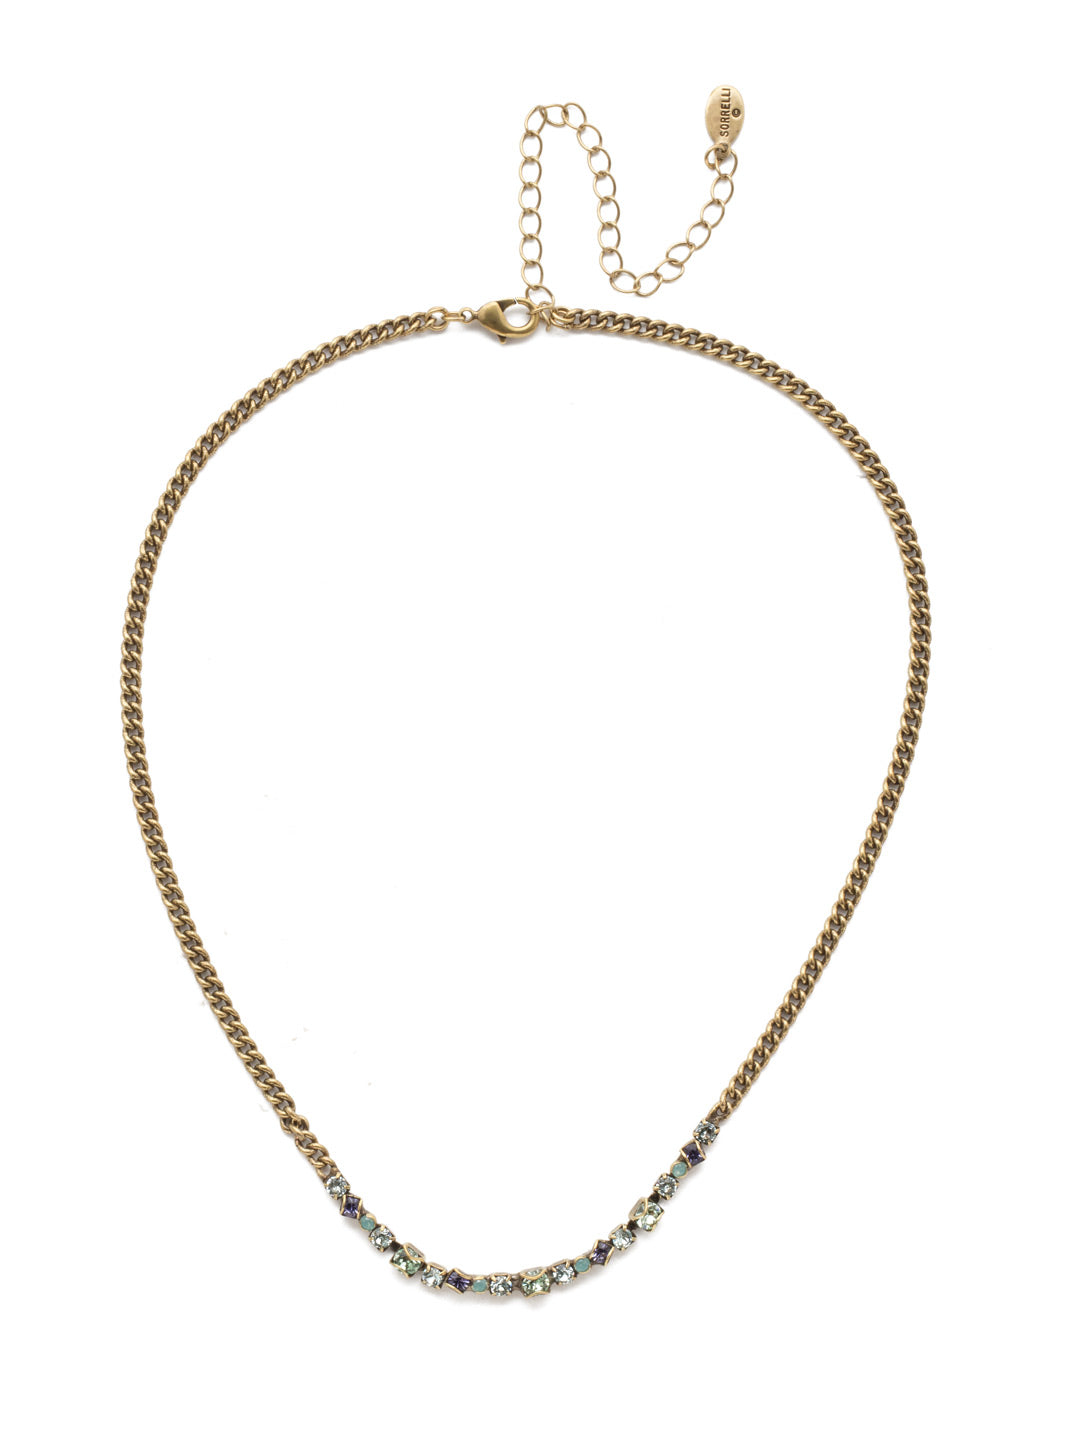 Charolette Tennis Necklace - NEN21AGIRB